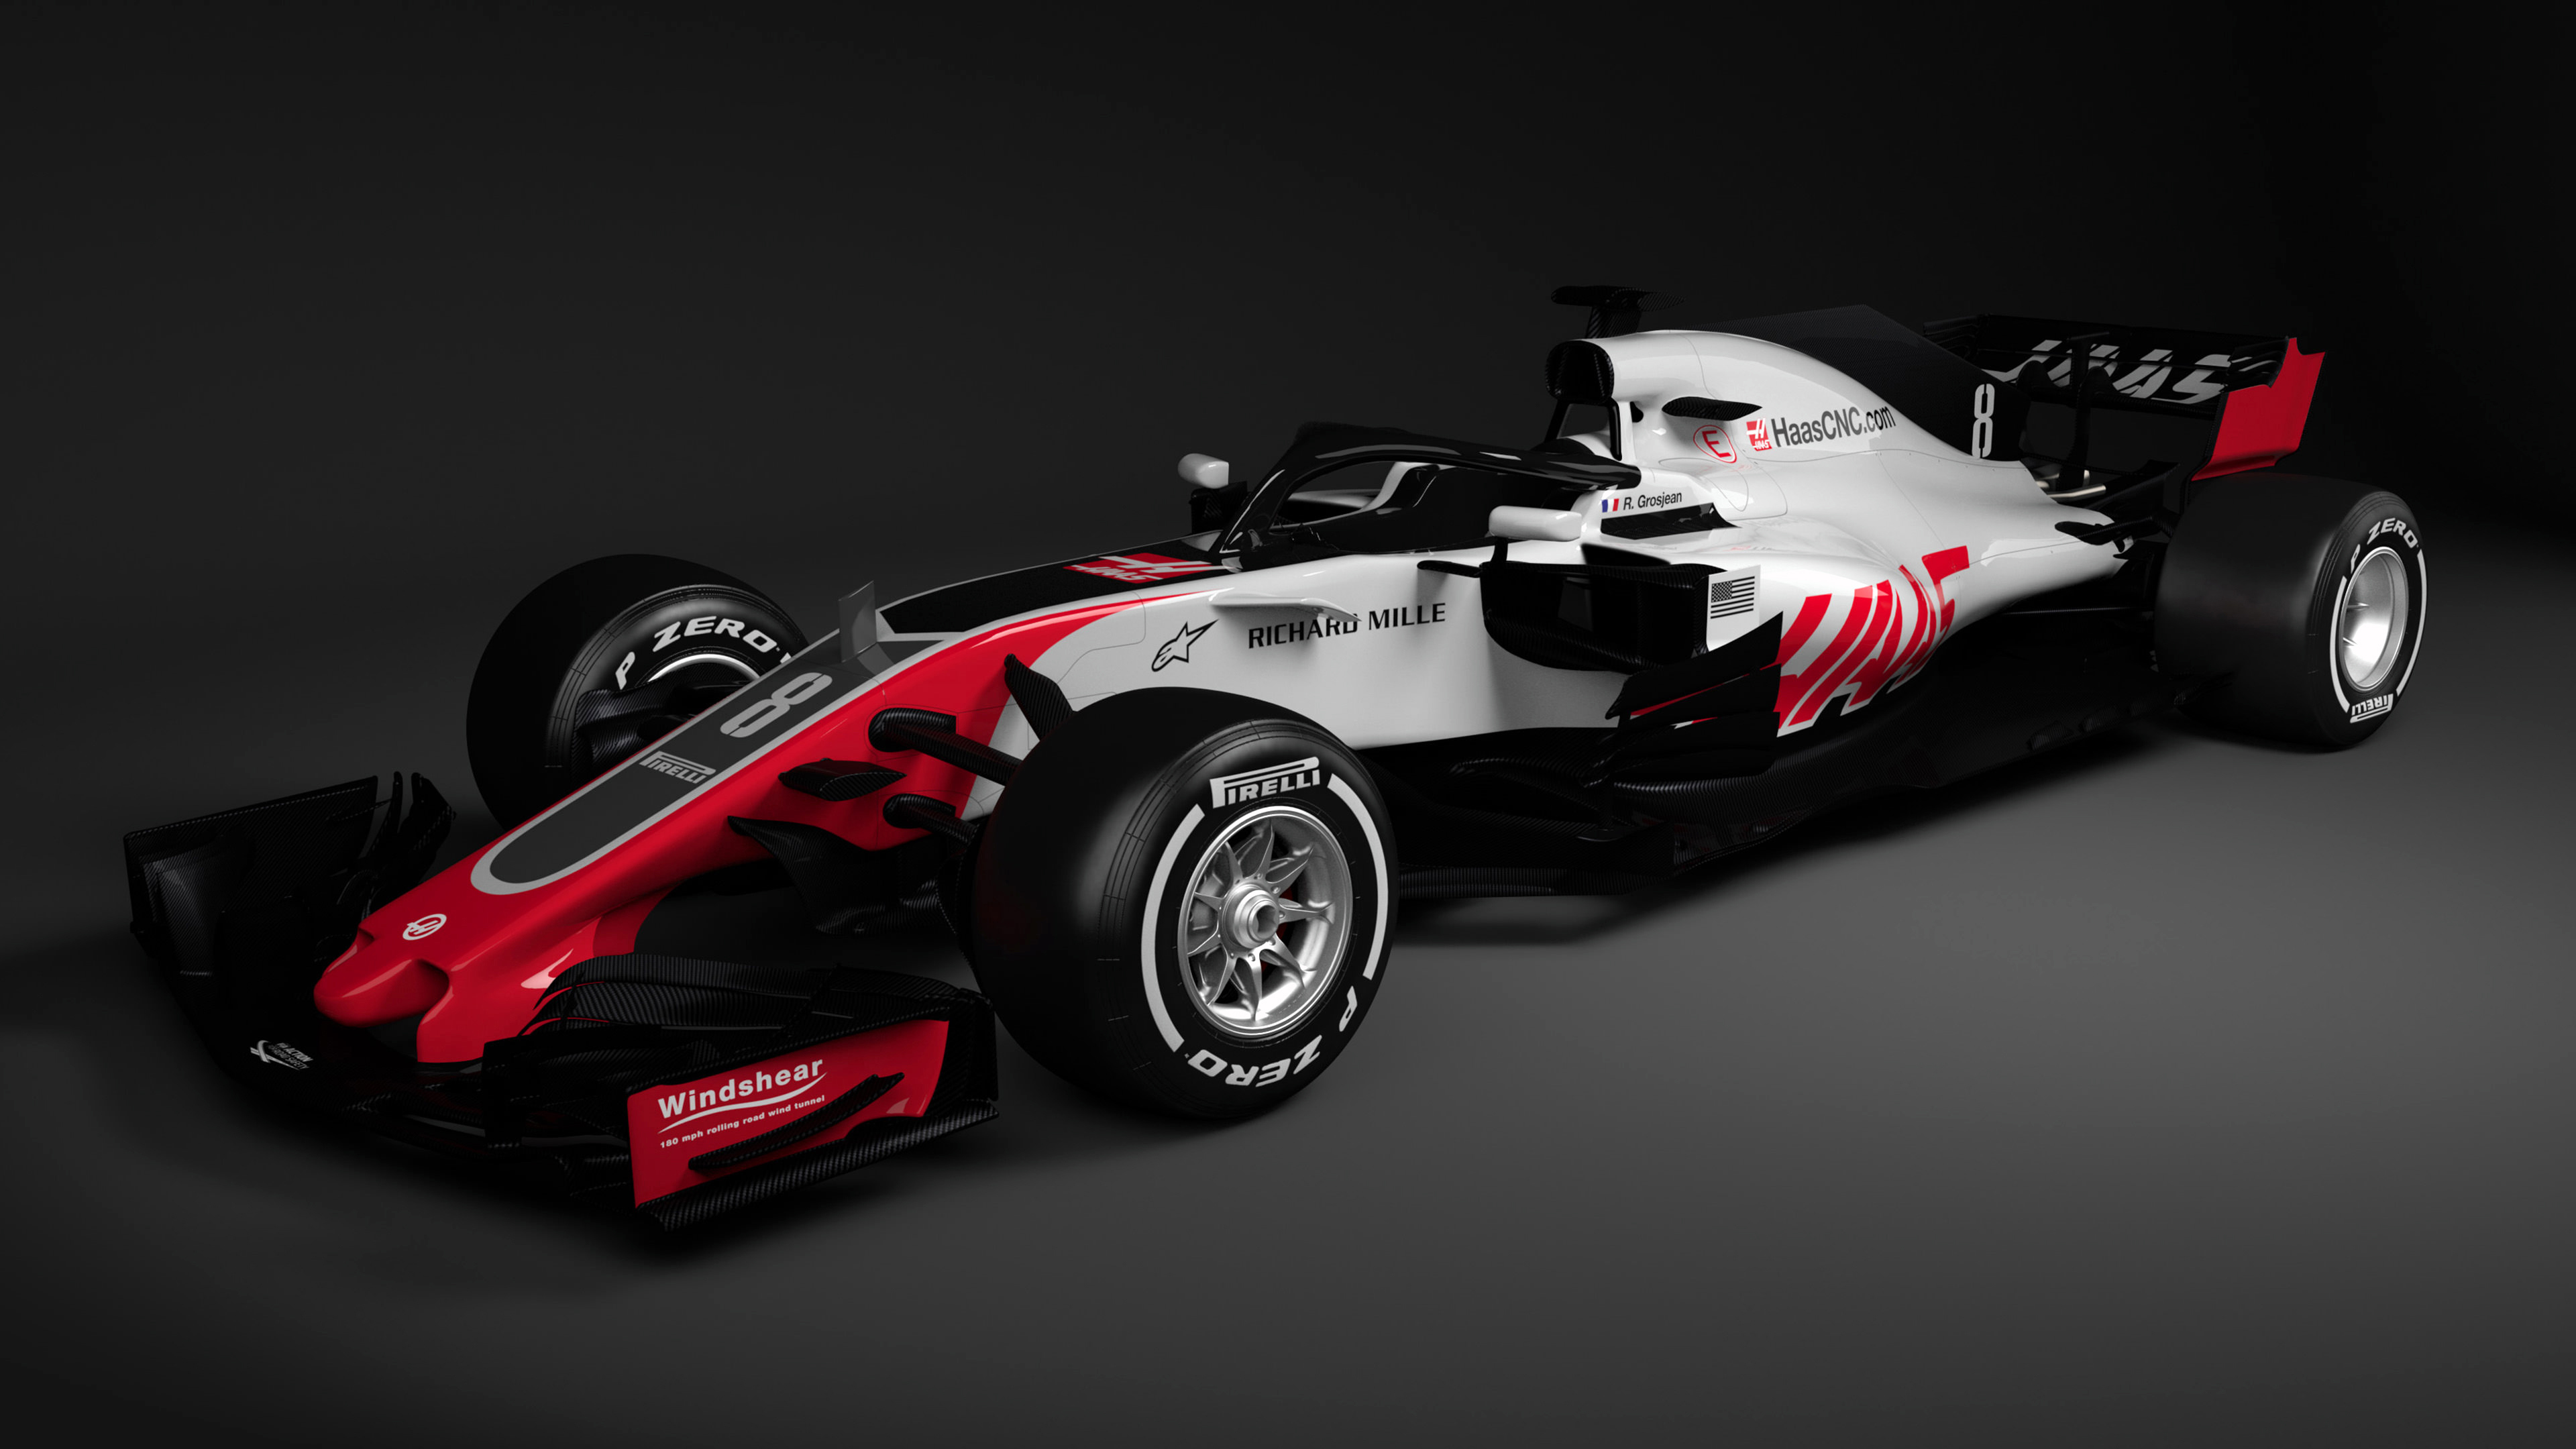 Haas F1 Formula 1 Car 4k 2 Wallpaper Hd Car Wallpapers